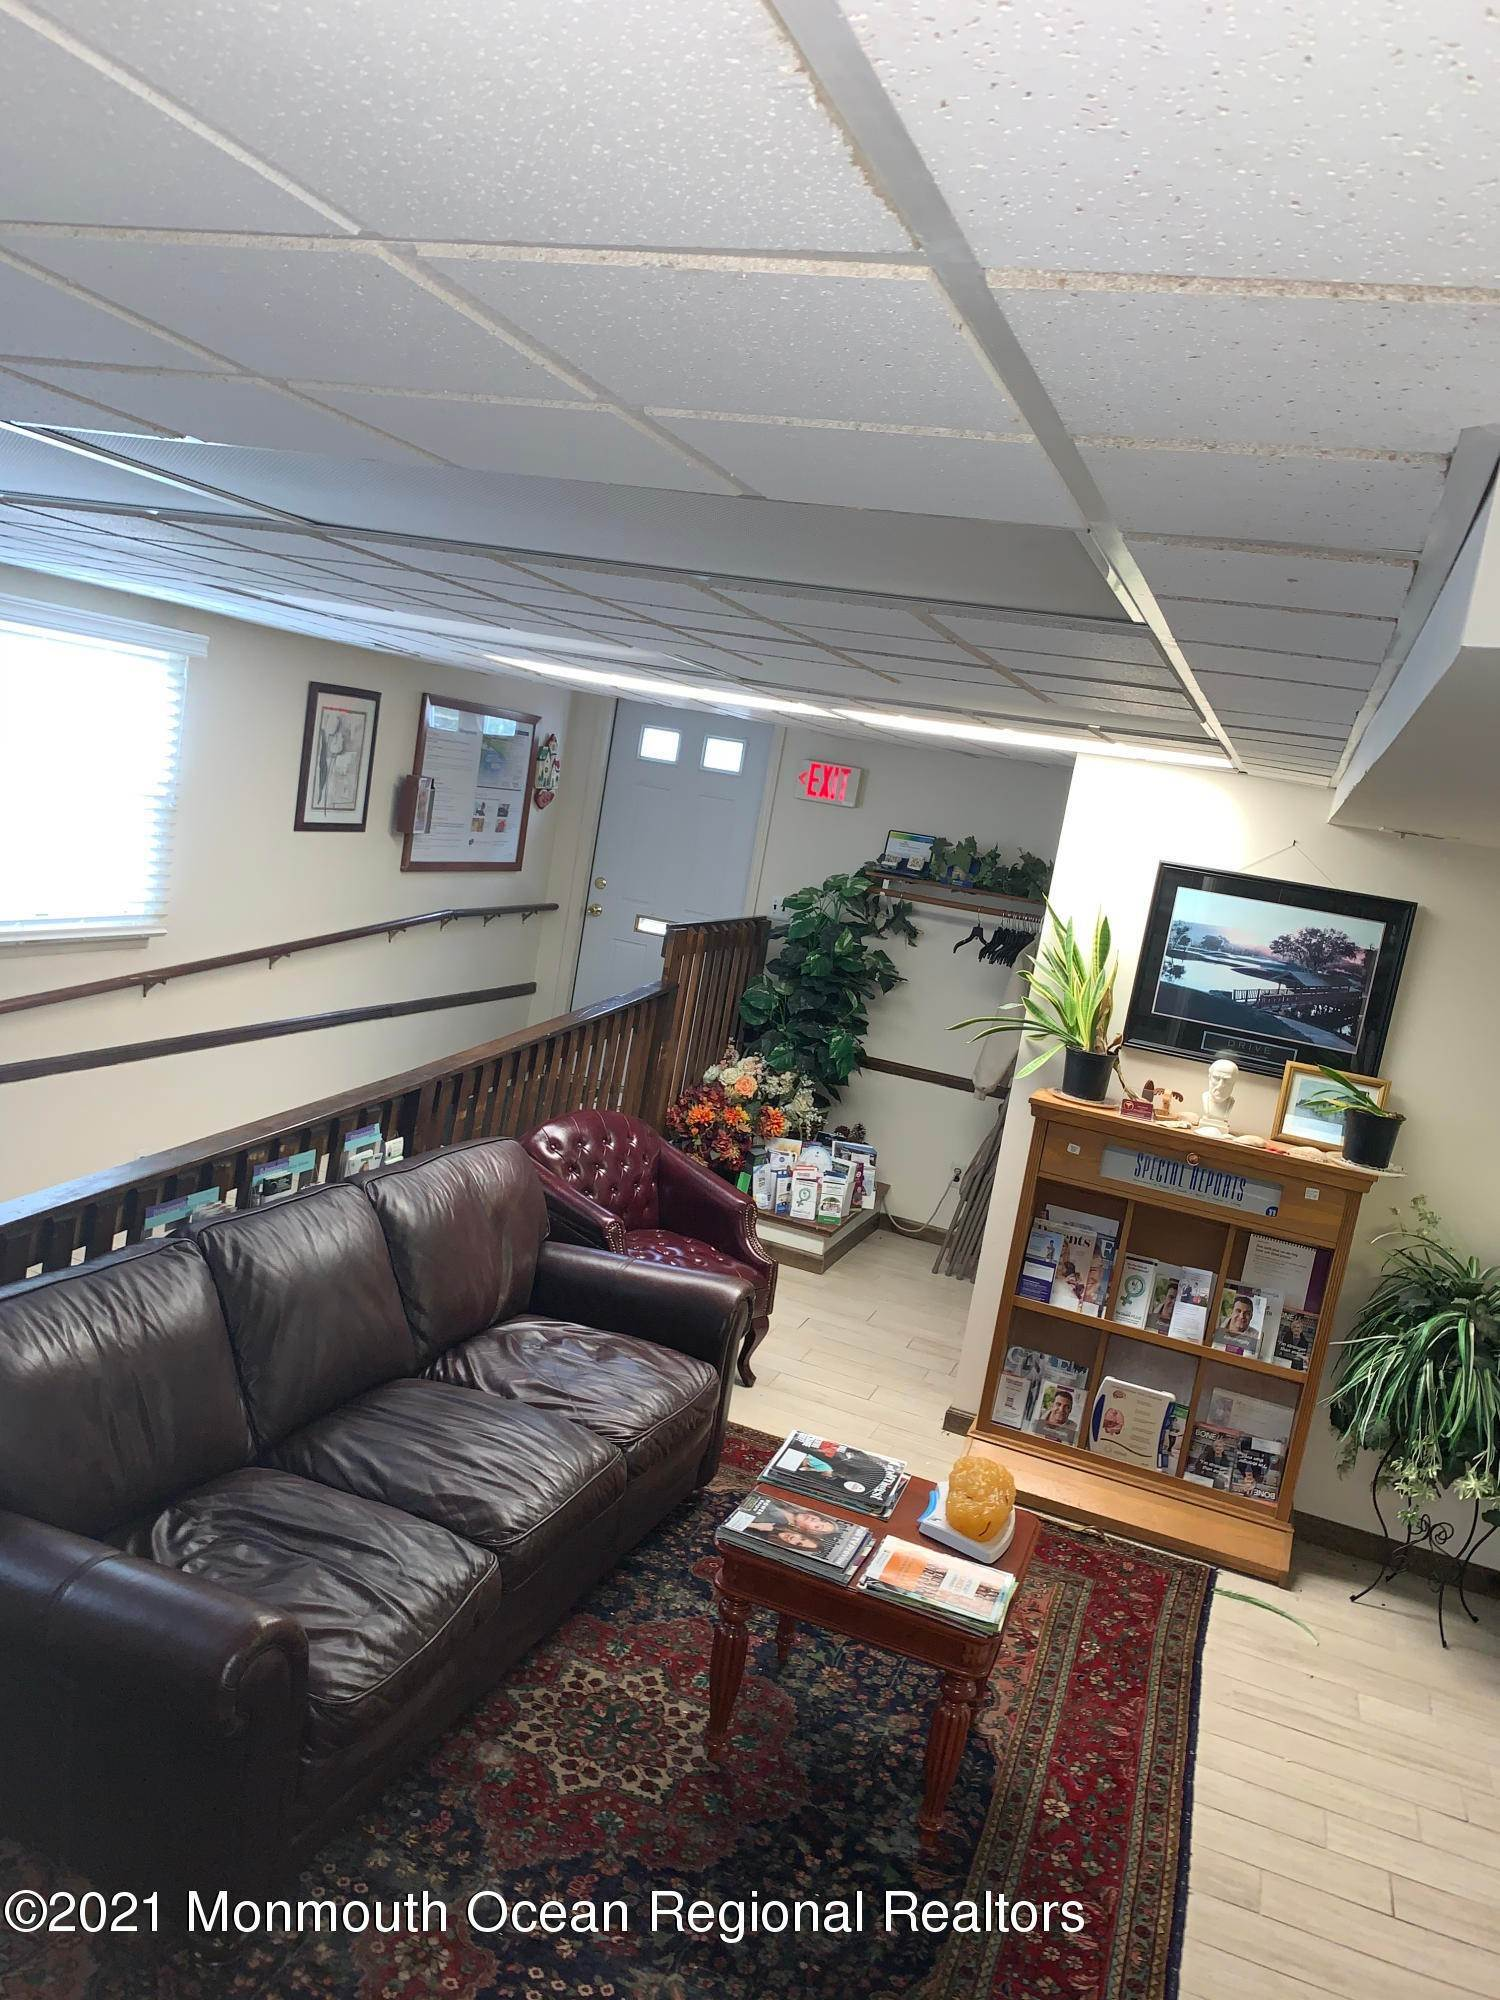 21. Commercial for Sale at 158 Main Street Matawan, New Jersey 07747 United States